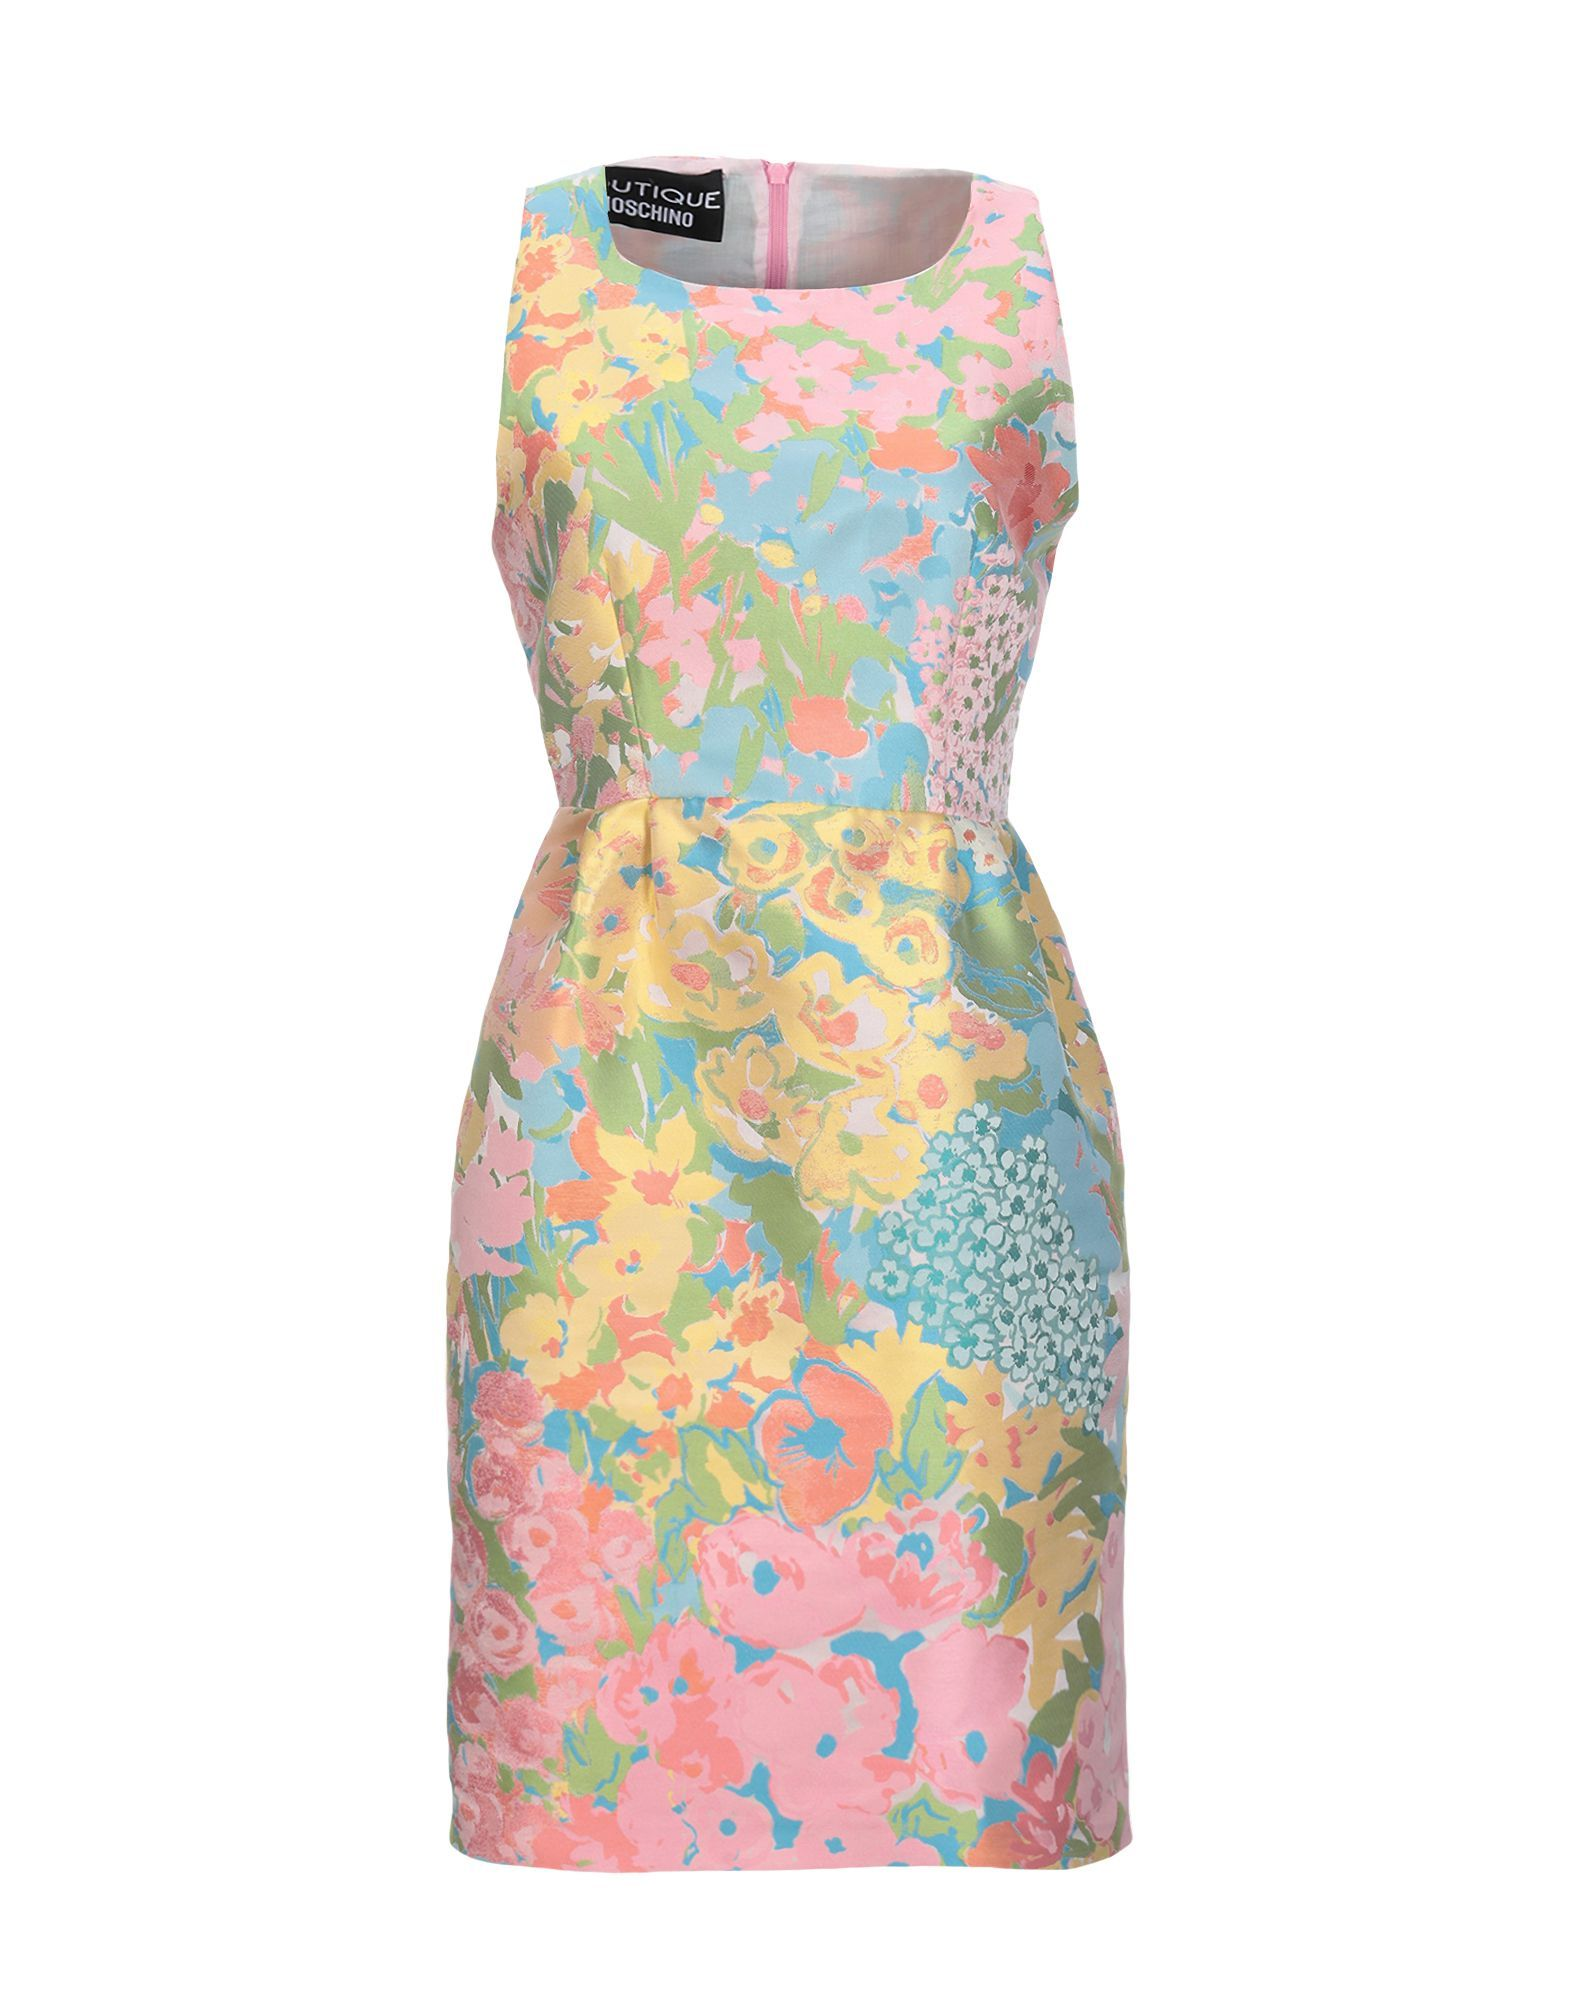 DRESSES Boutique Moschino Pink Woman Cotton